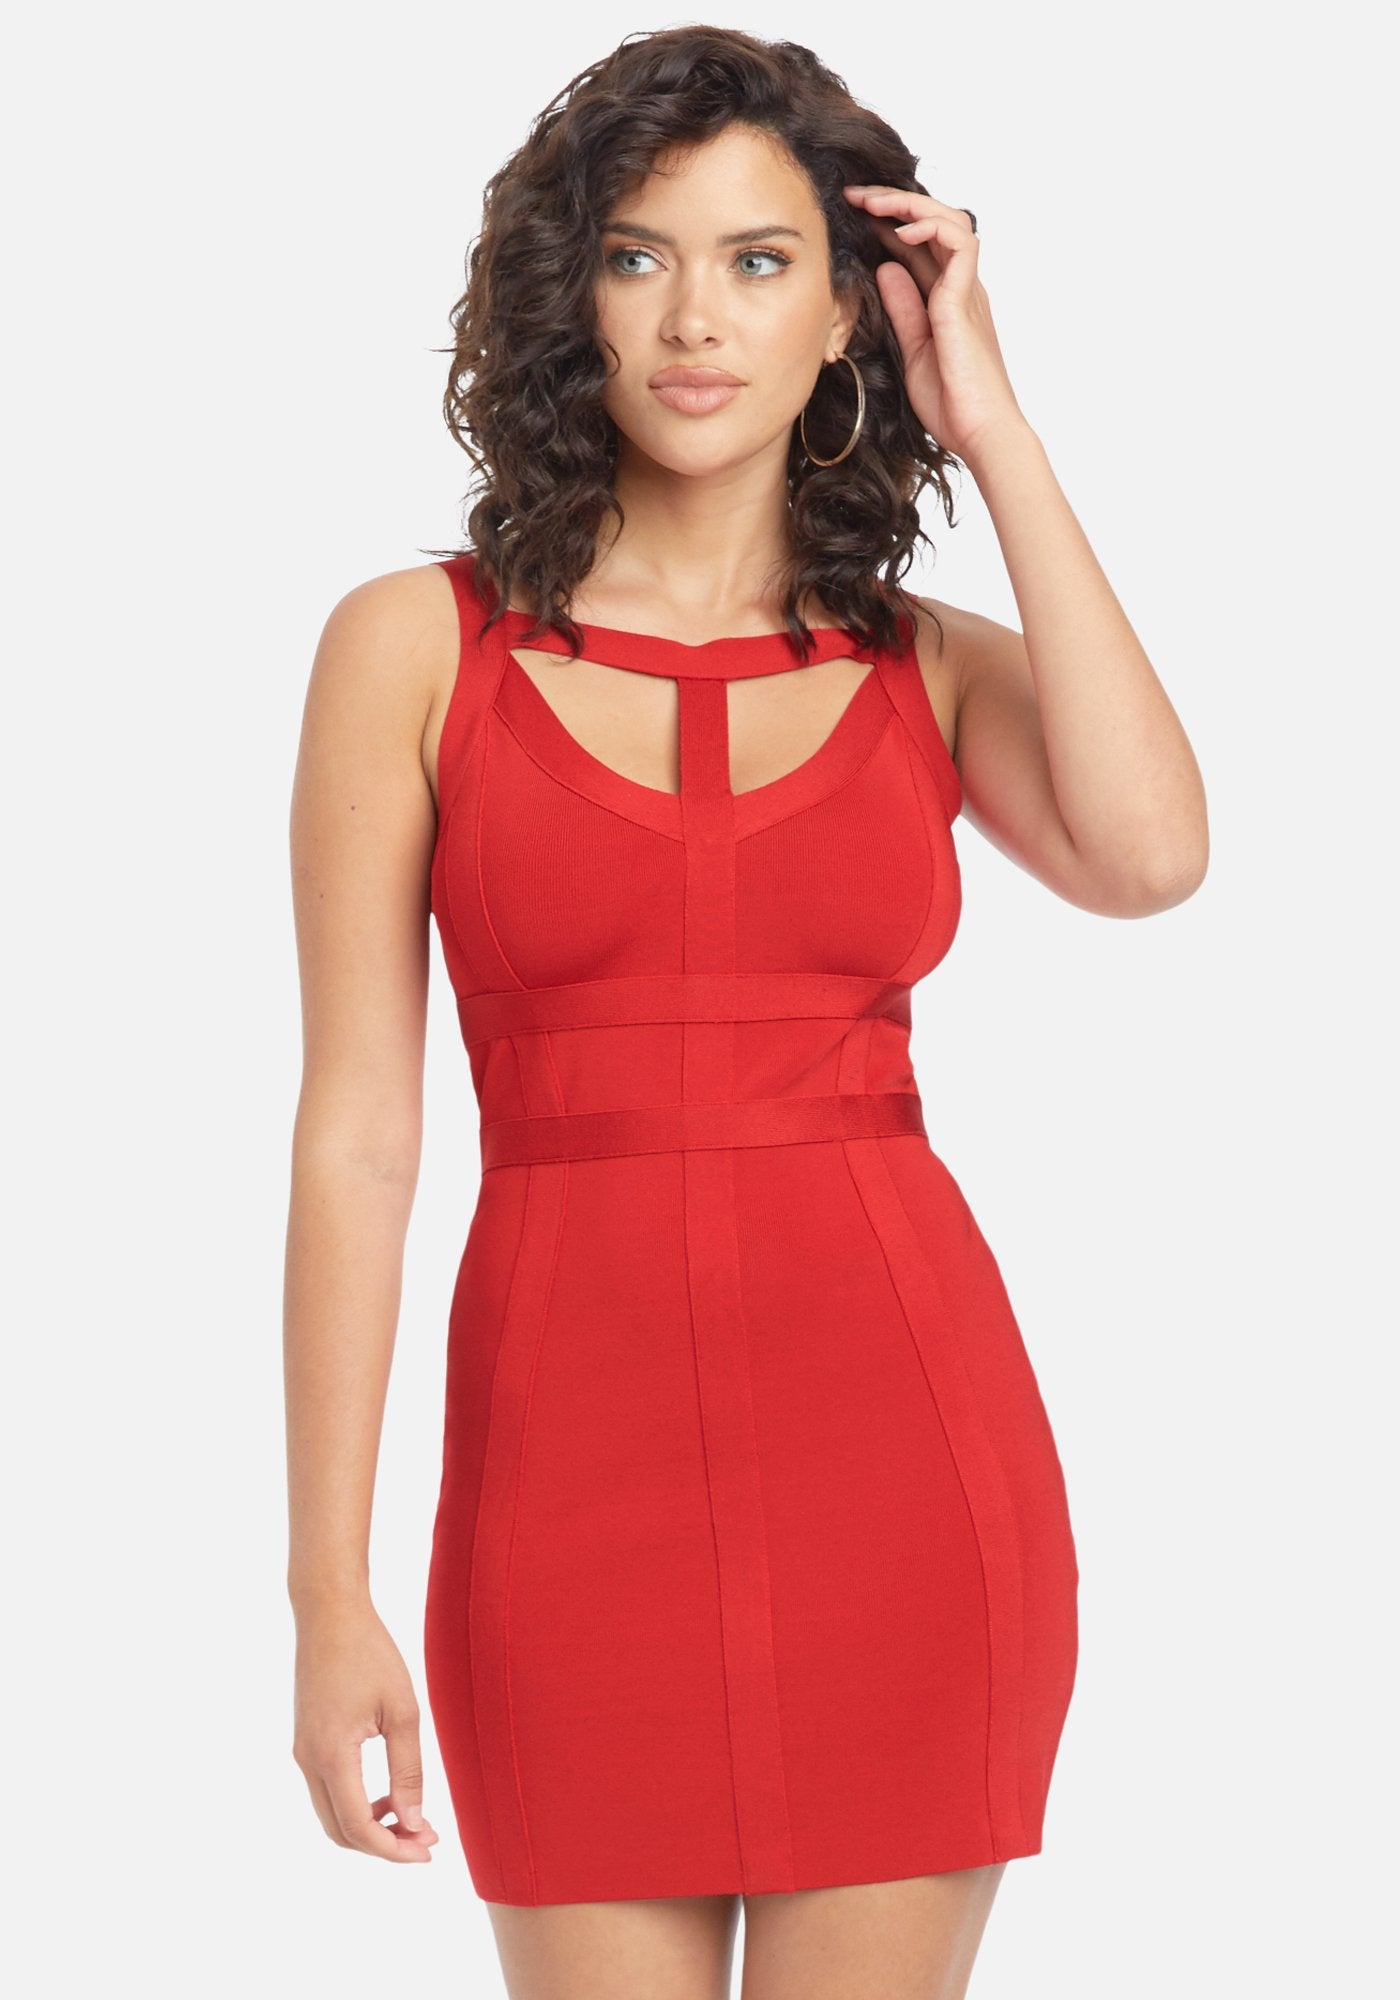 Bebe Women's Bandage Cutout Dress, Size Small in Red Spandex